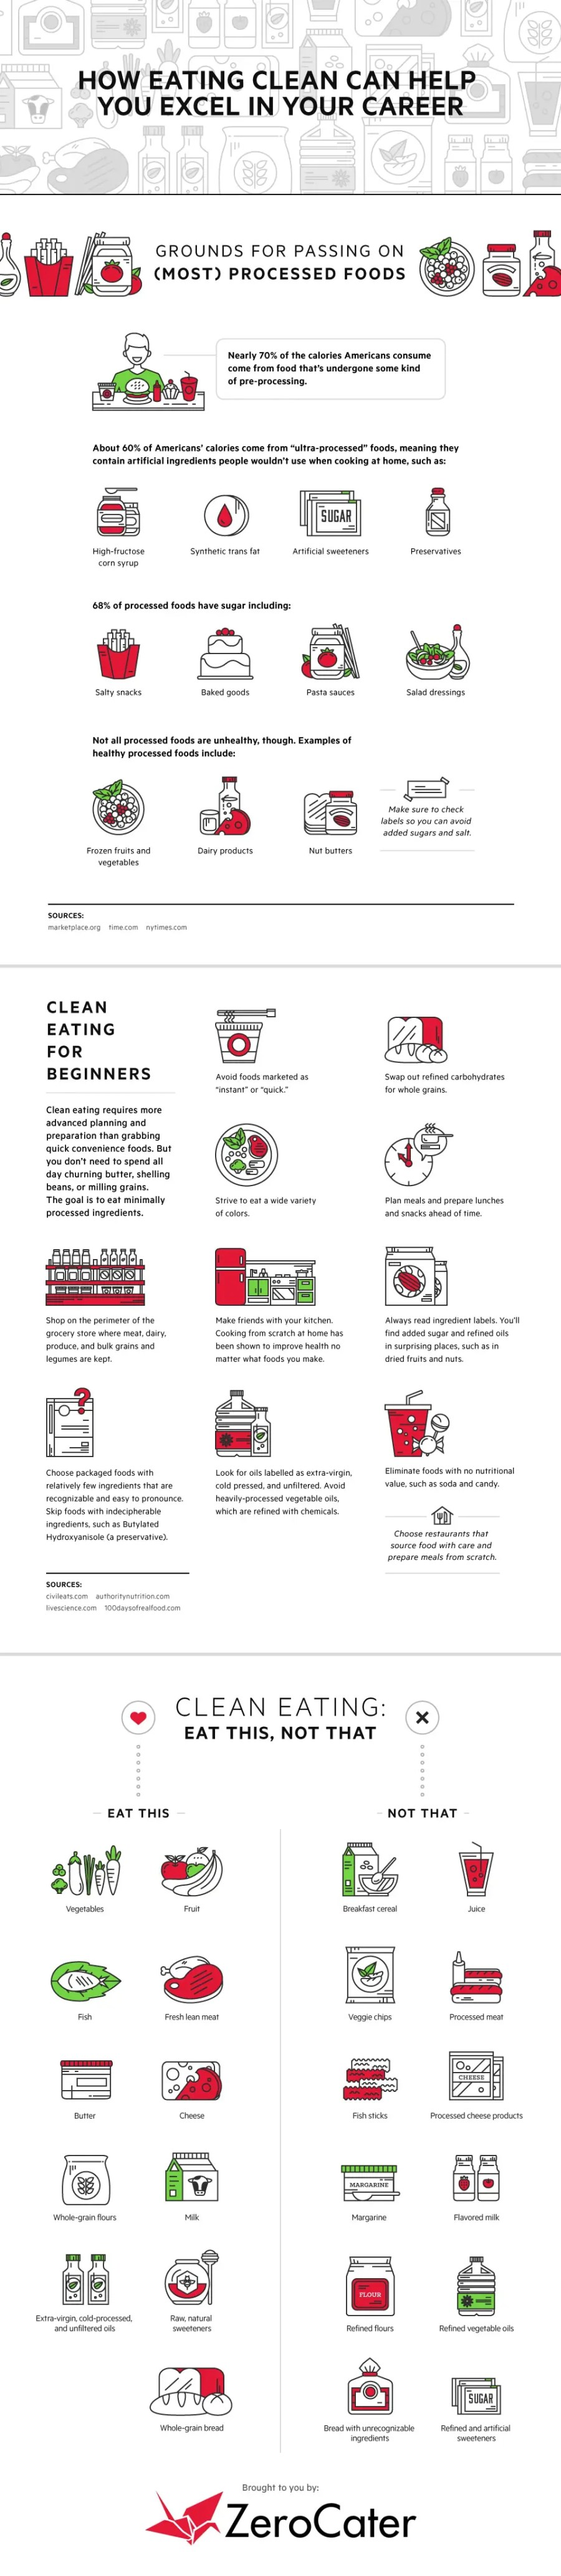 How Eating Clean Can Help You Excel in Your Career InfoGraphics